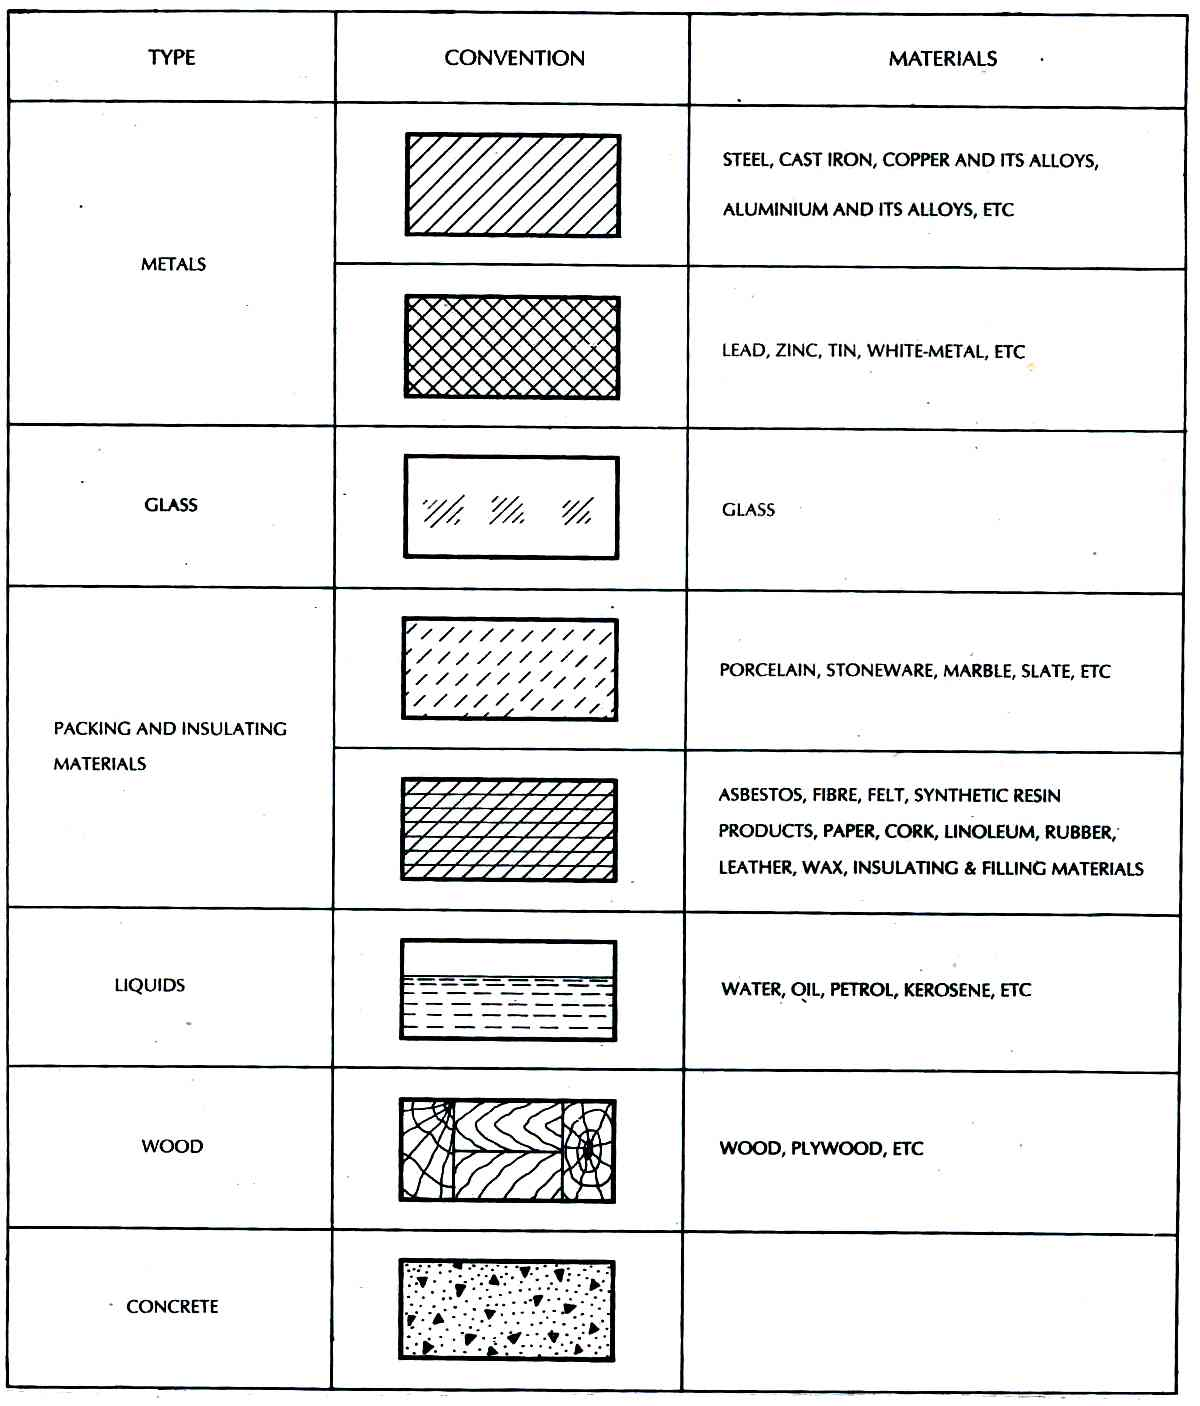 Technical Drawing Material Representation Google Search